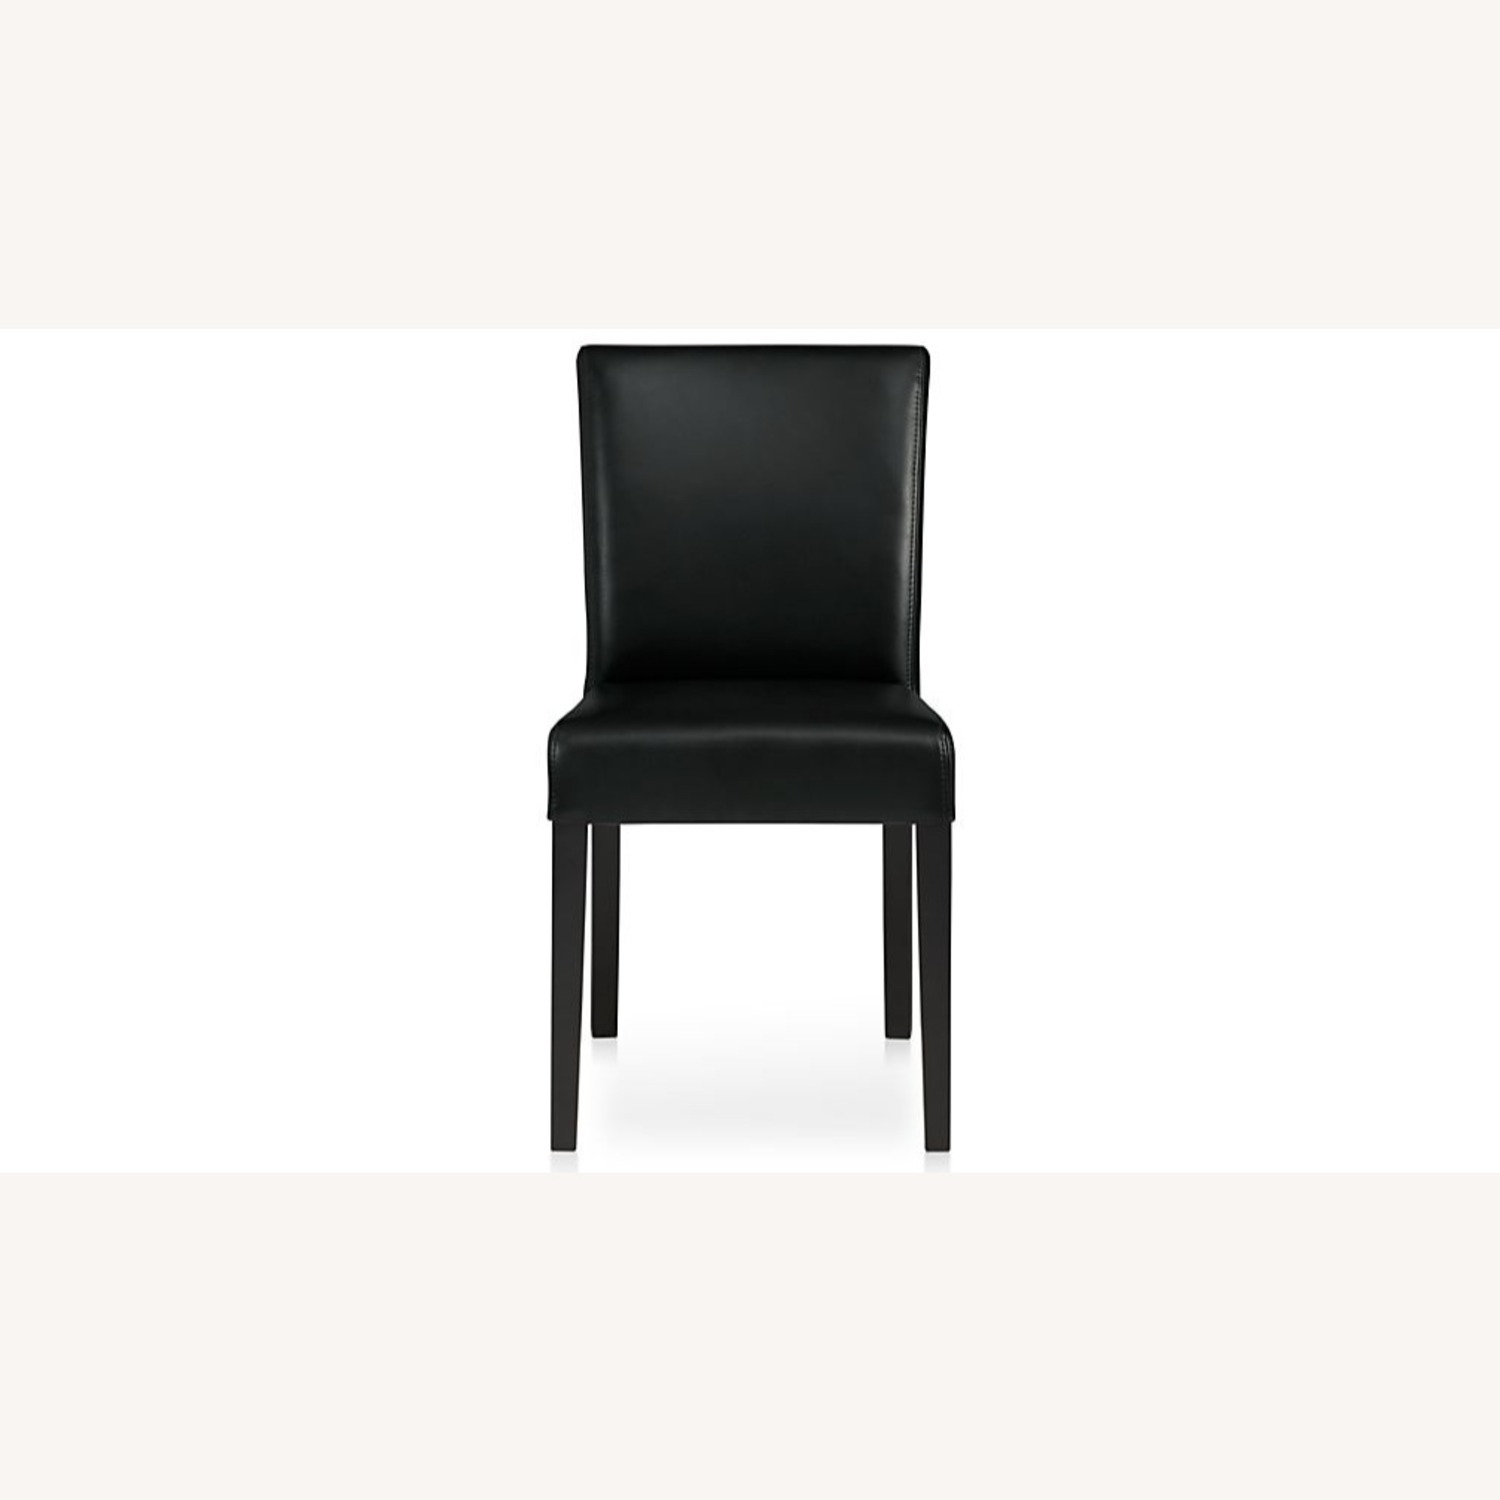 Crate & Barrel Lowe Leather Dining Chair - image-1